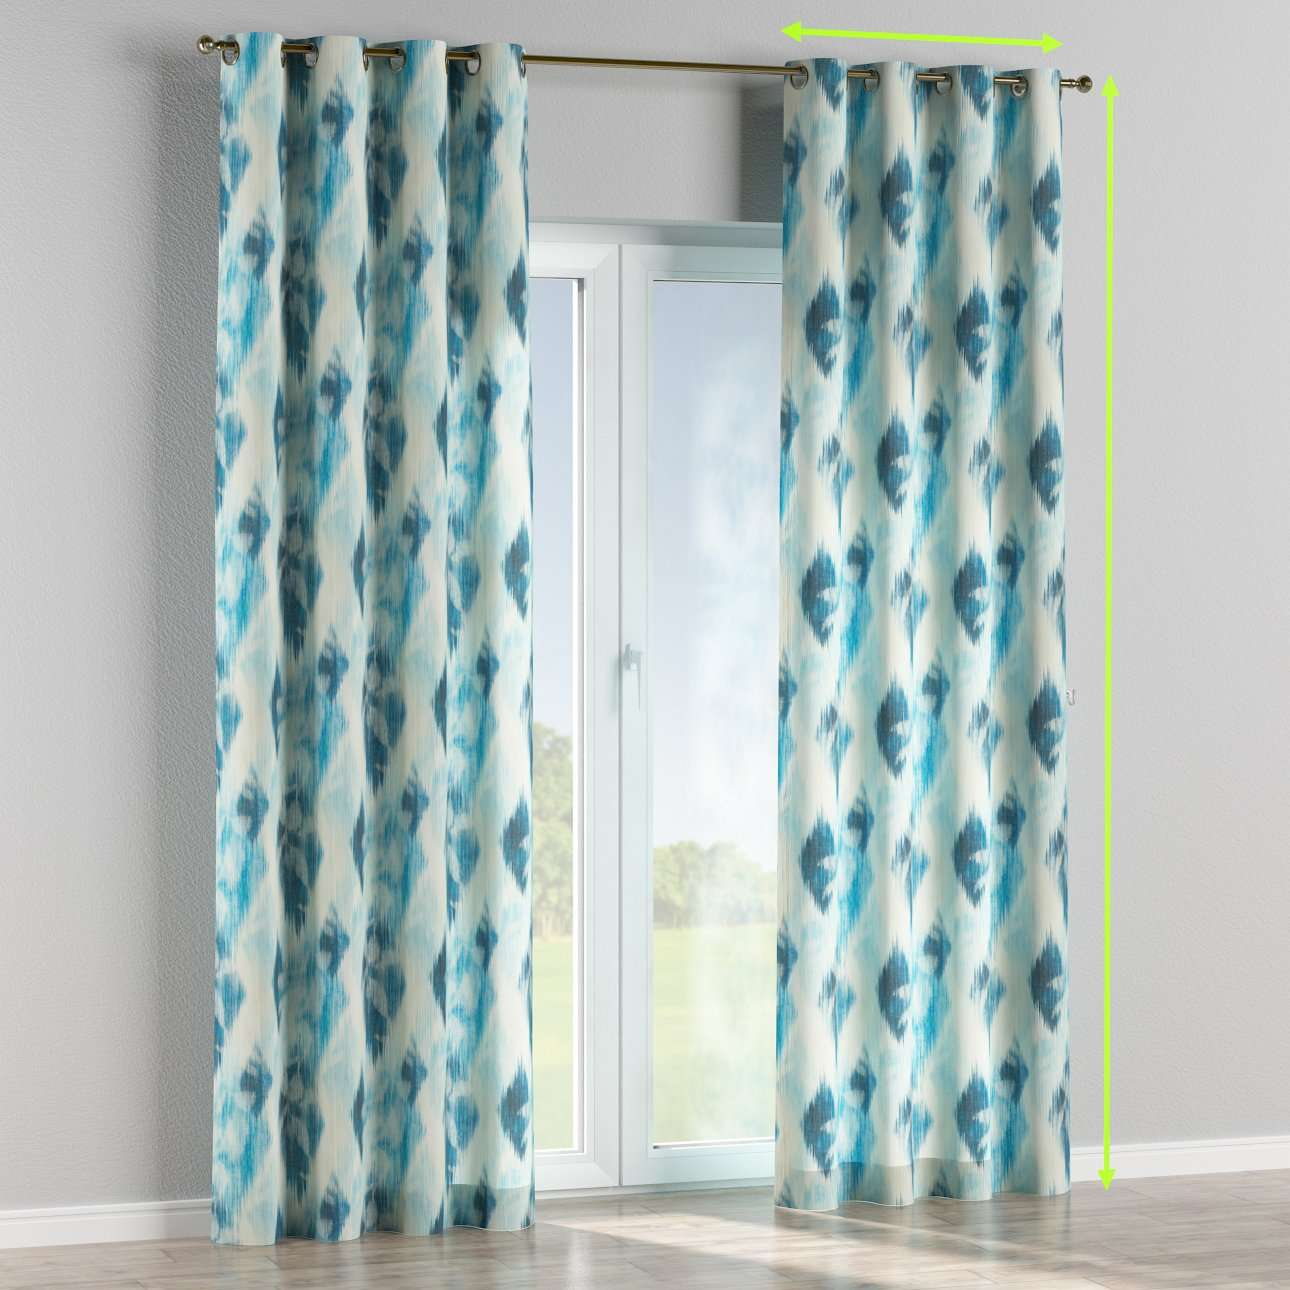 Eyelet curtains in collection Aquarelle, fabric: 140-71